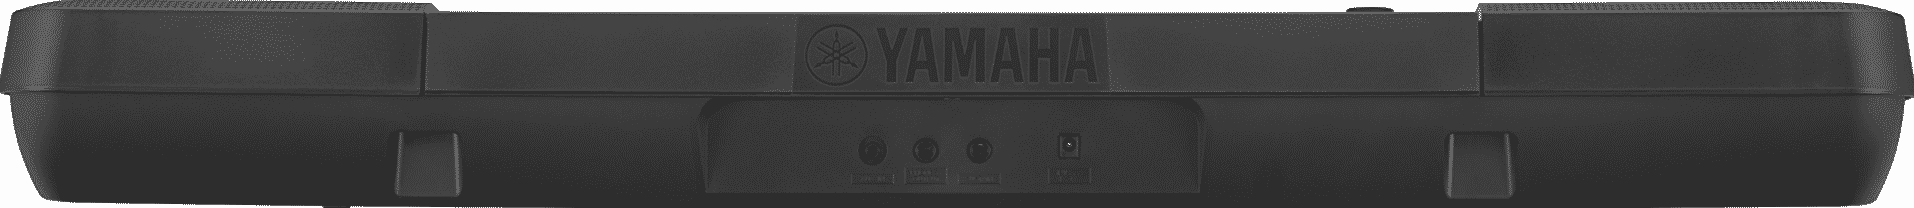 Yamaha YPT 255 Connectivity